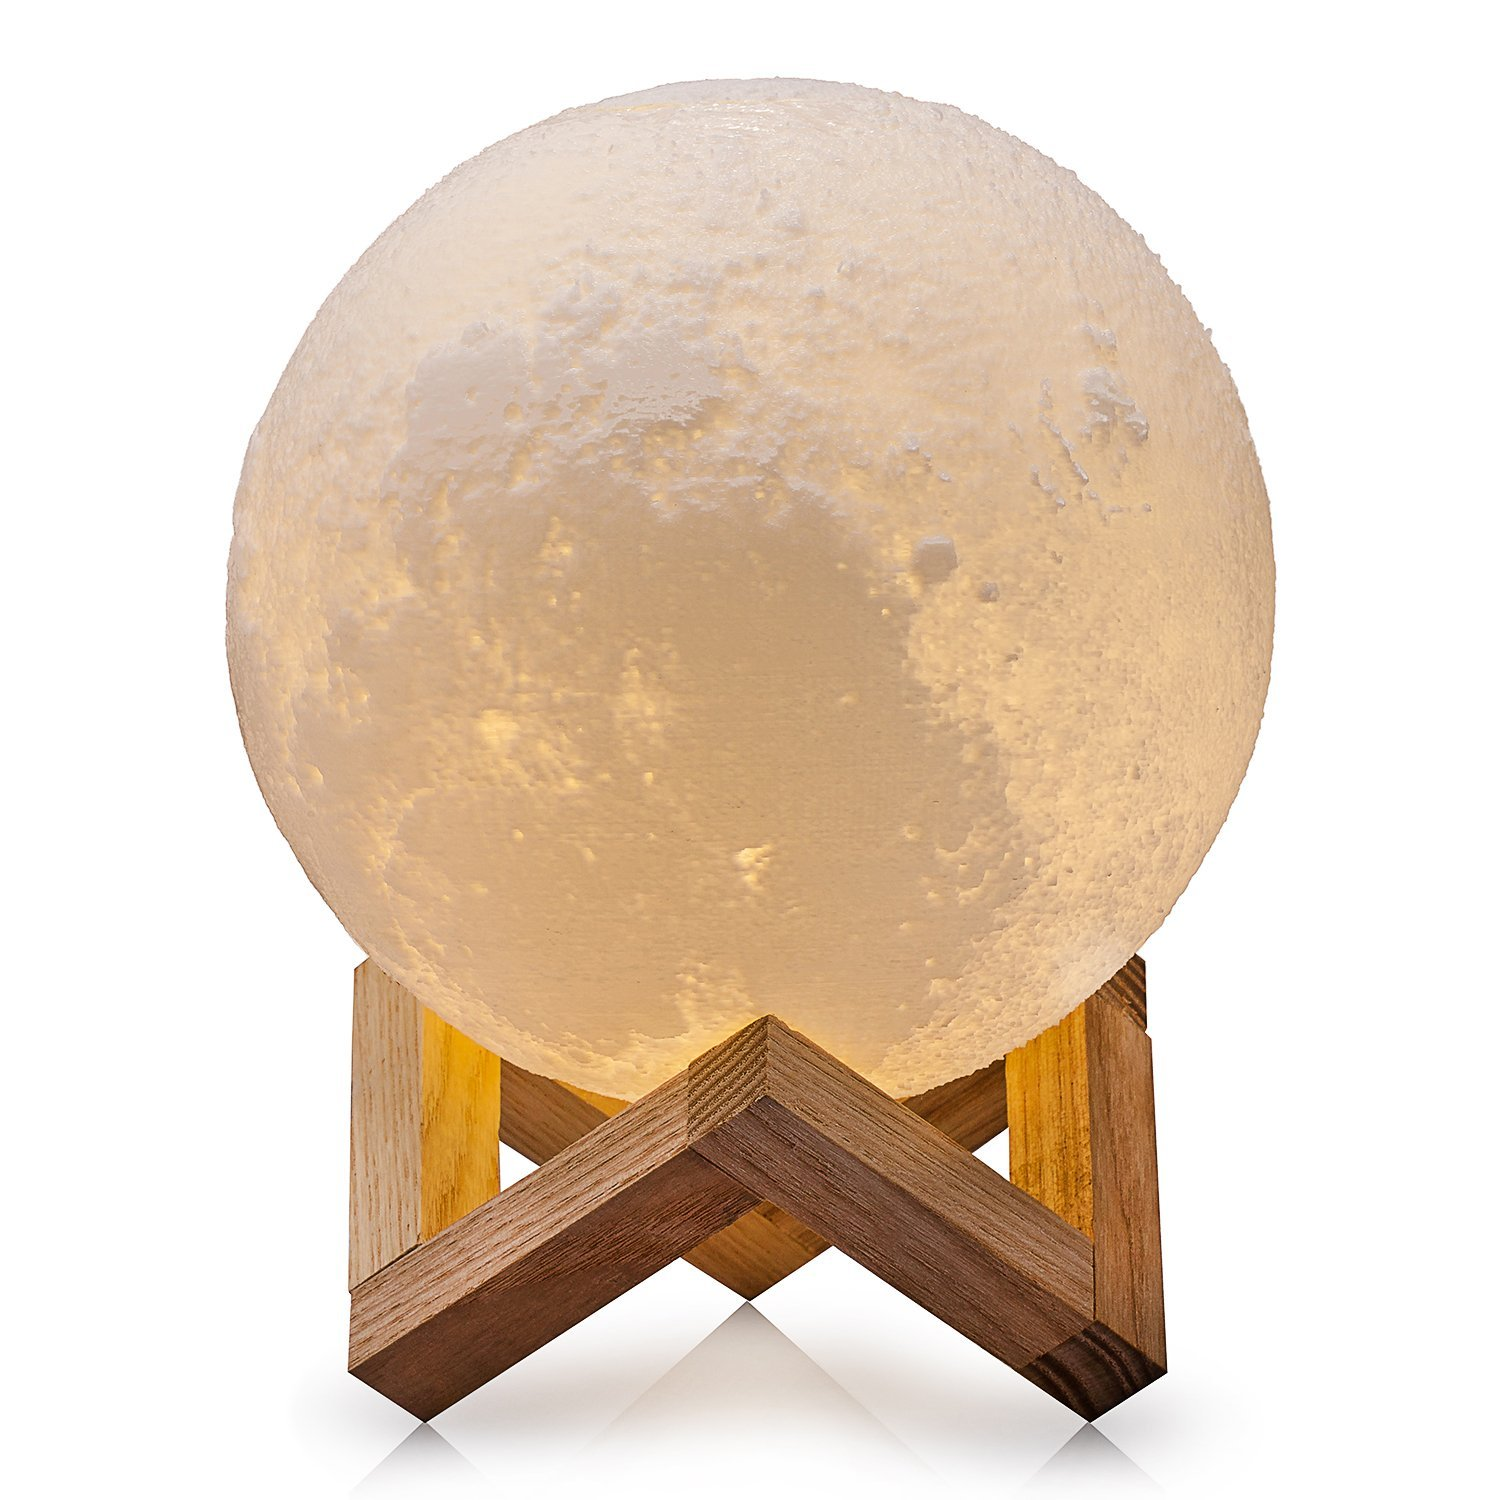 moon night light in the wooden stand